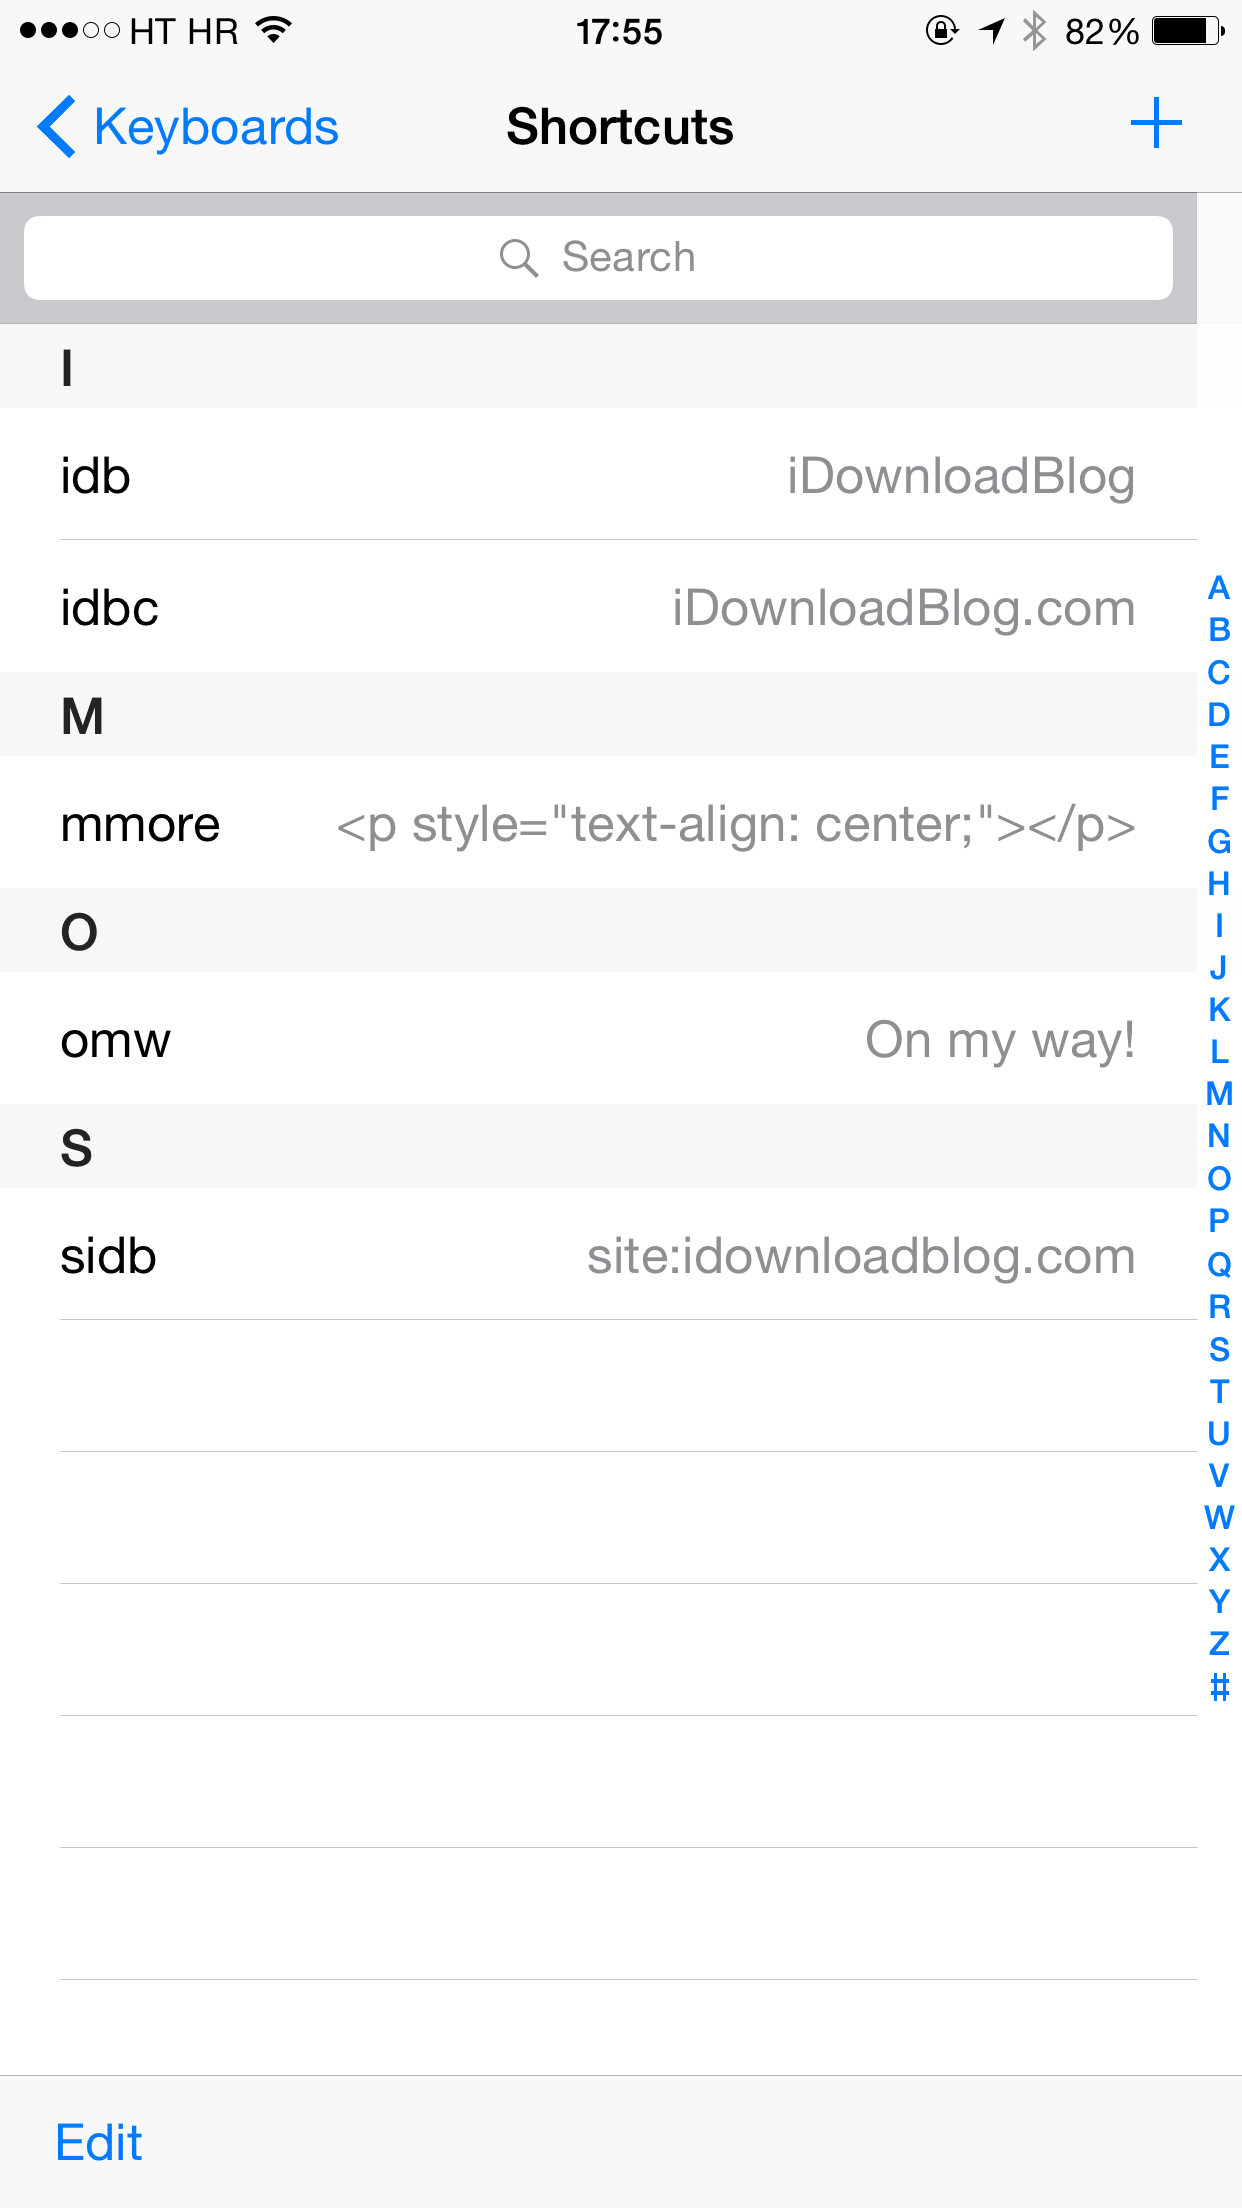 iOS 8 (Keyboard shortcusts 001)